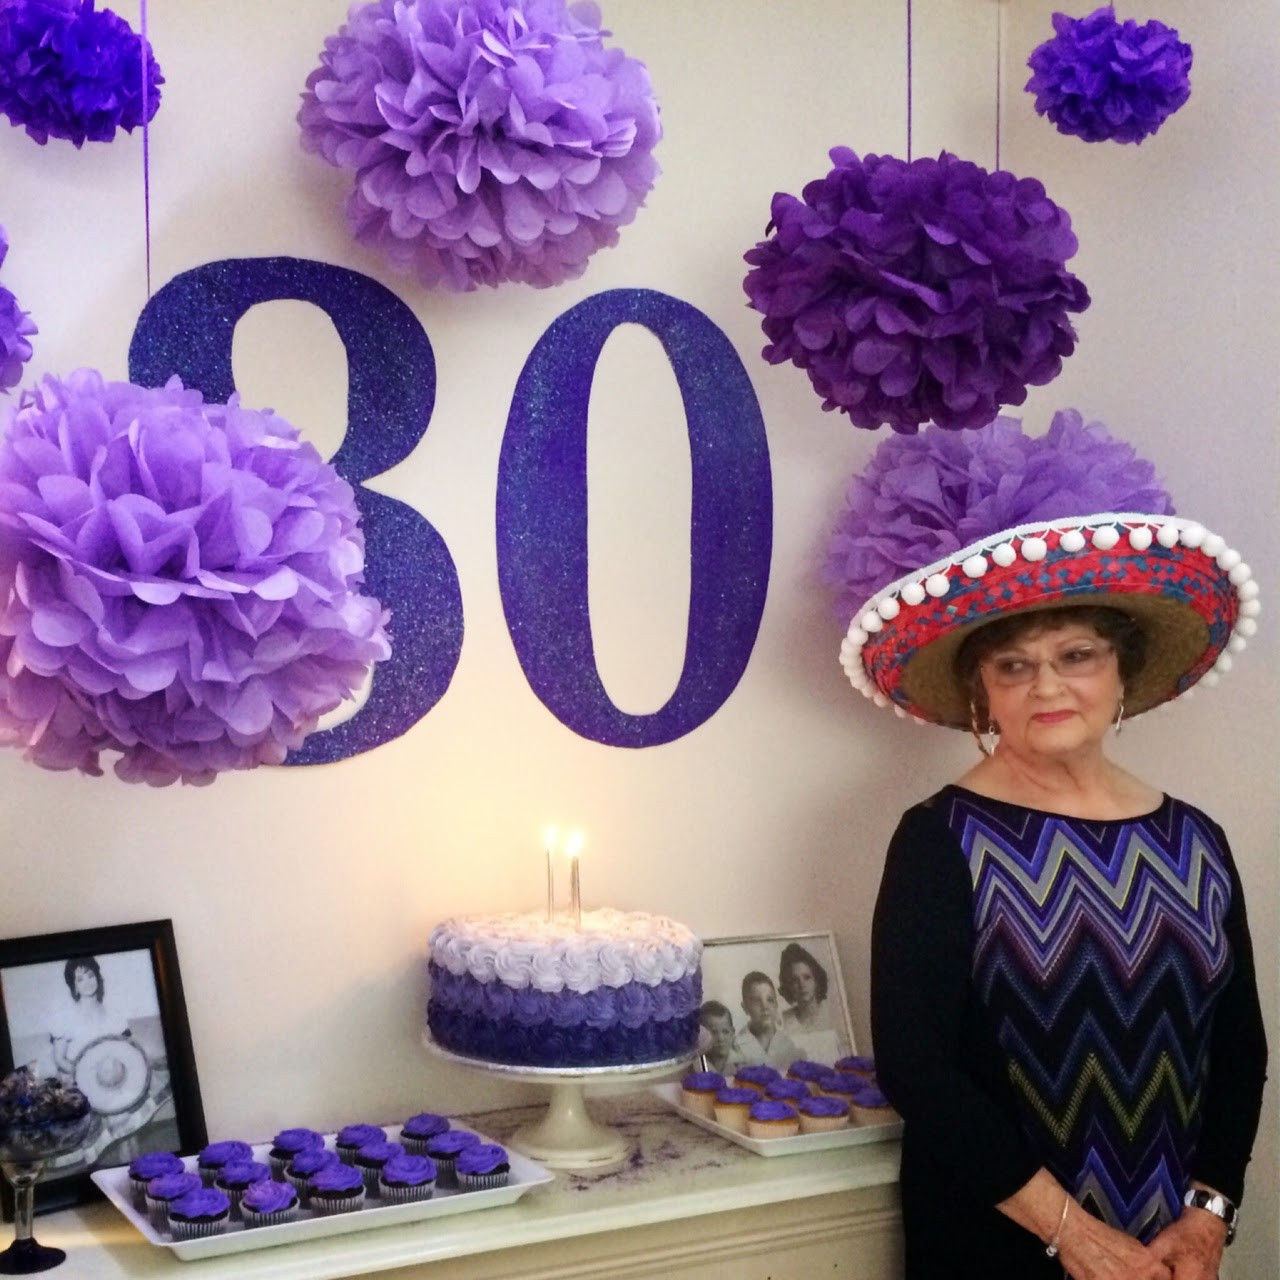 Best ideas about 80th Birthday Decorations . Save or Pin Southern FIT 80th Birthday Party & Decor Now.